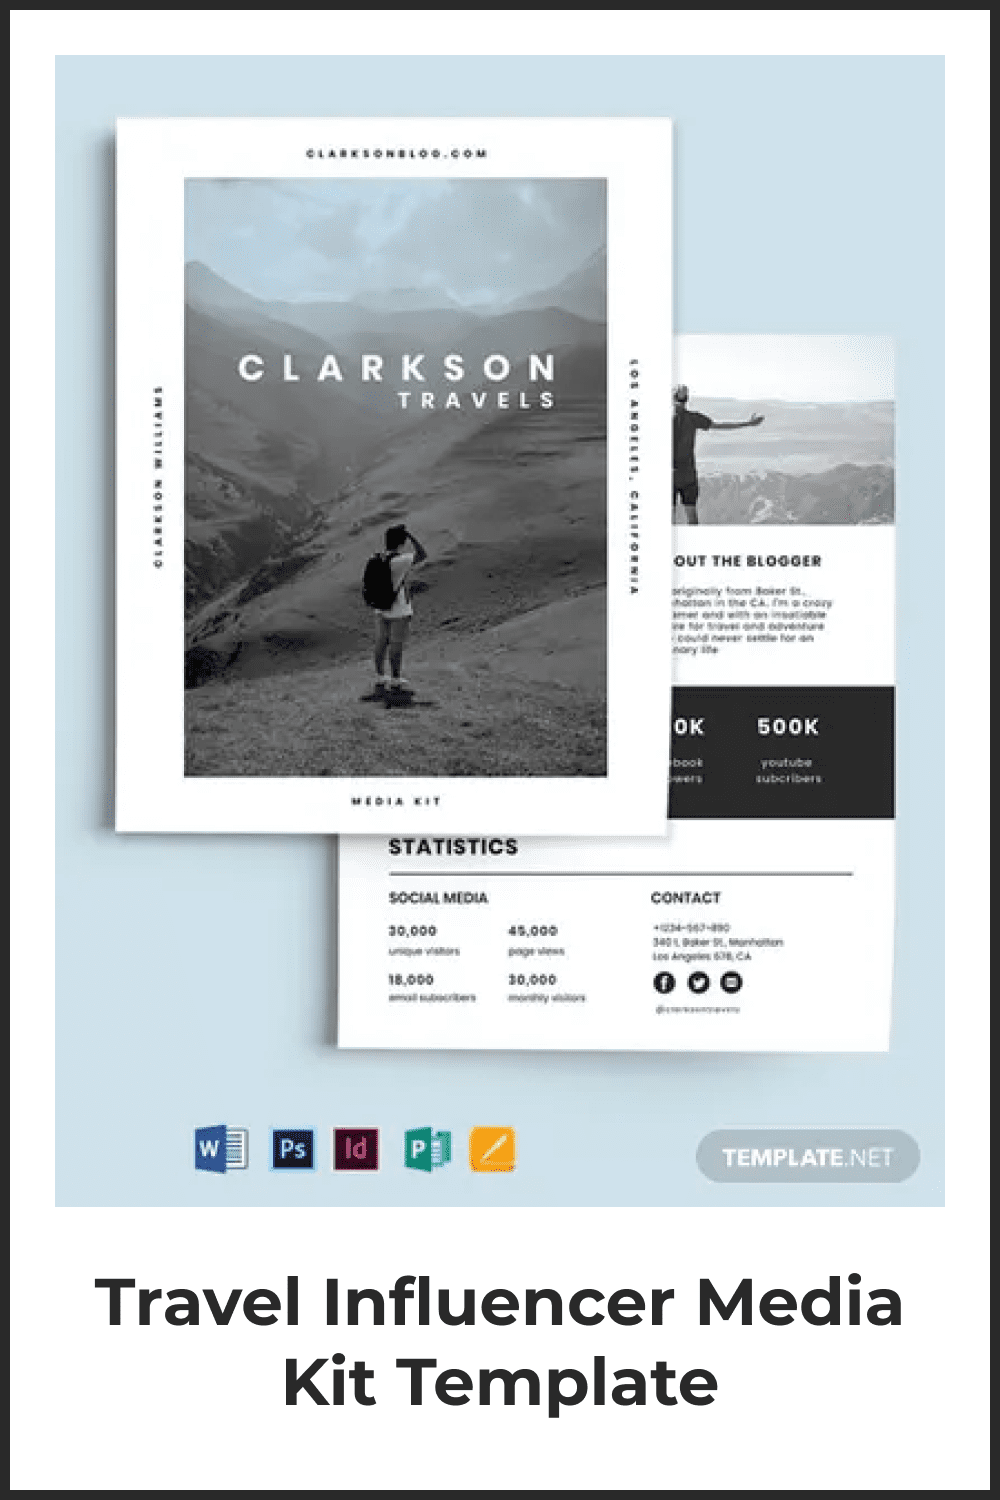 This template is a real godsend for a travel blogger.